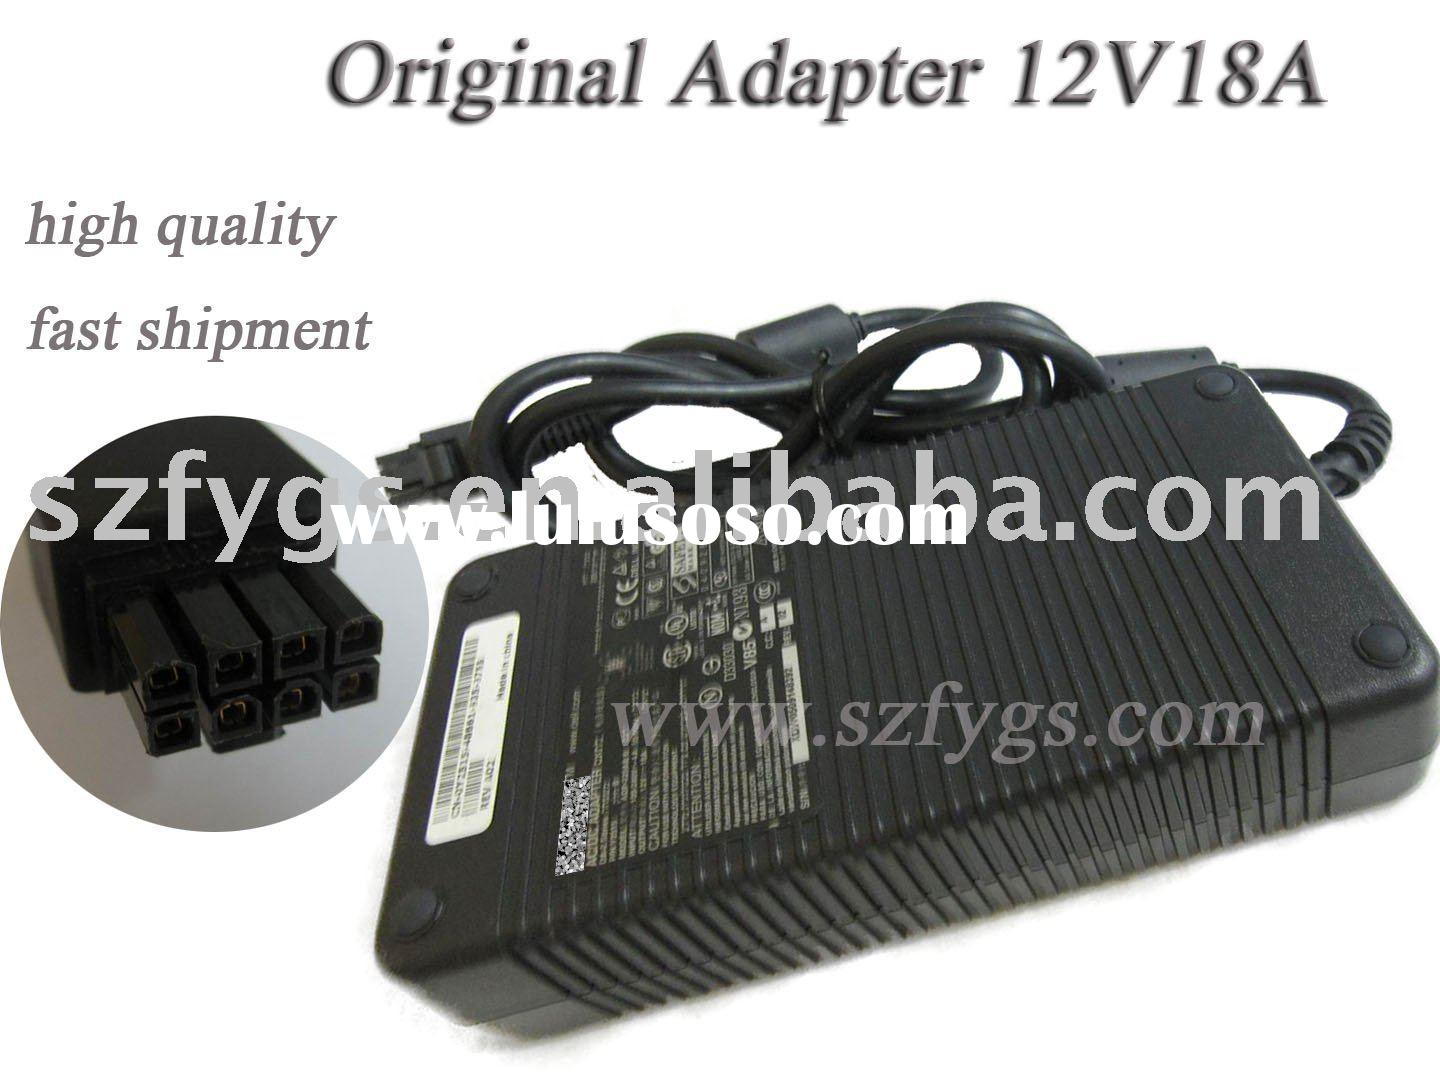 Adapter for Dell DA-2 12V 18A